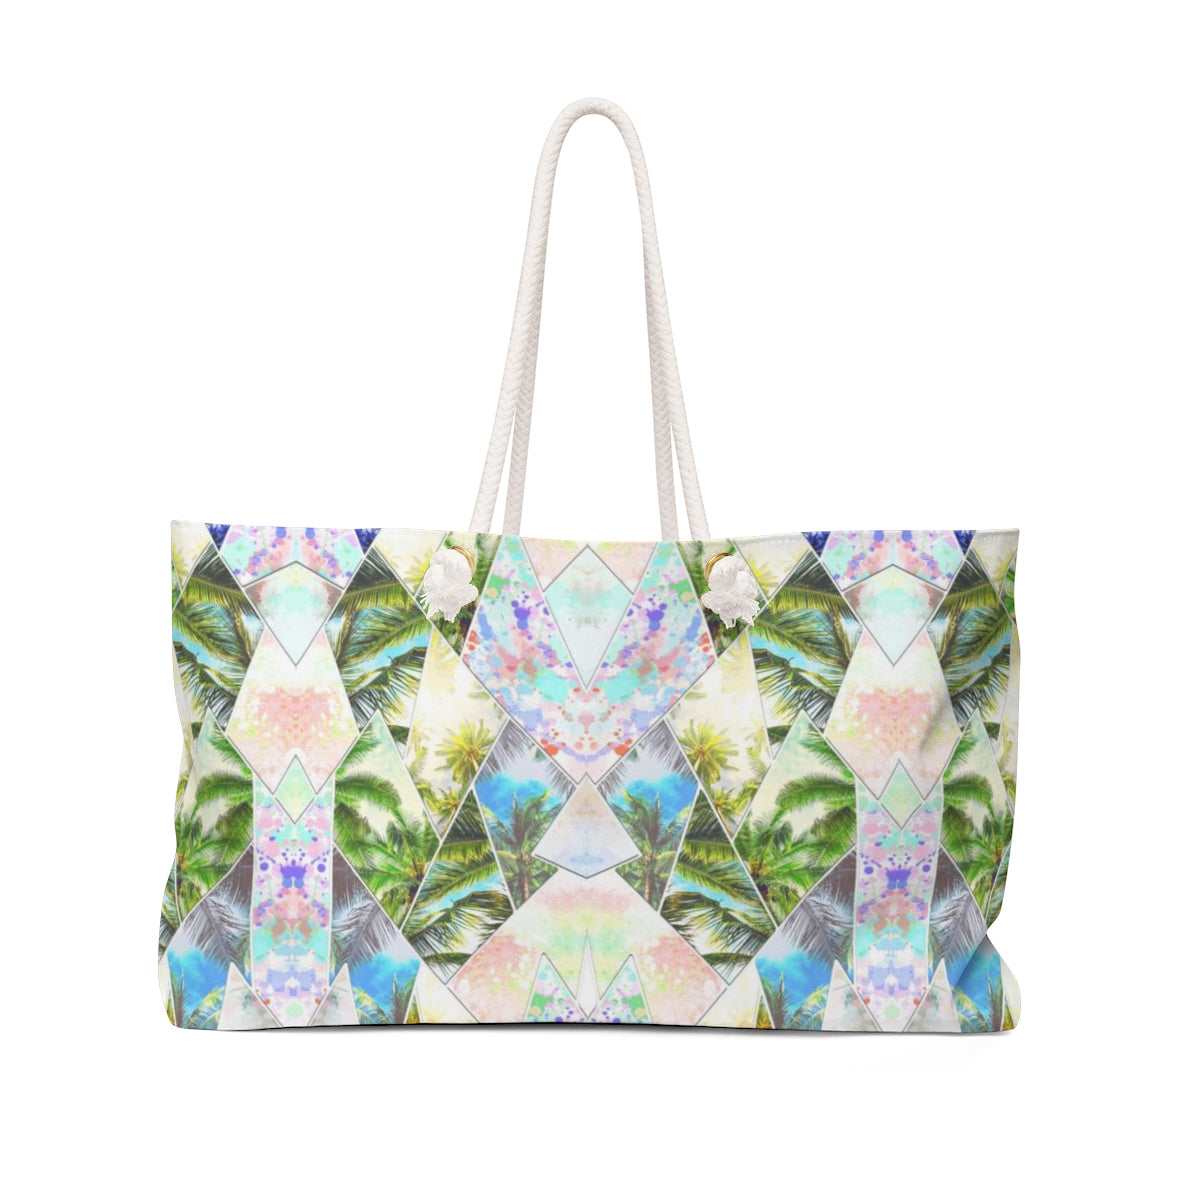 Fiji Islands #0001 (Weekender Tote)